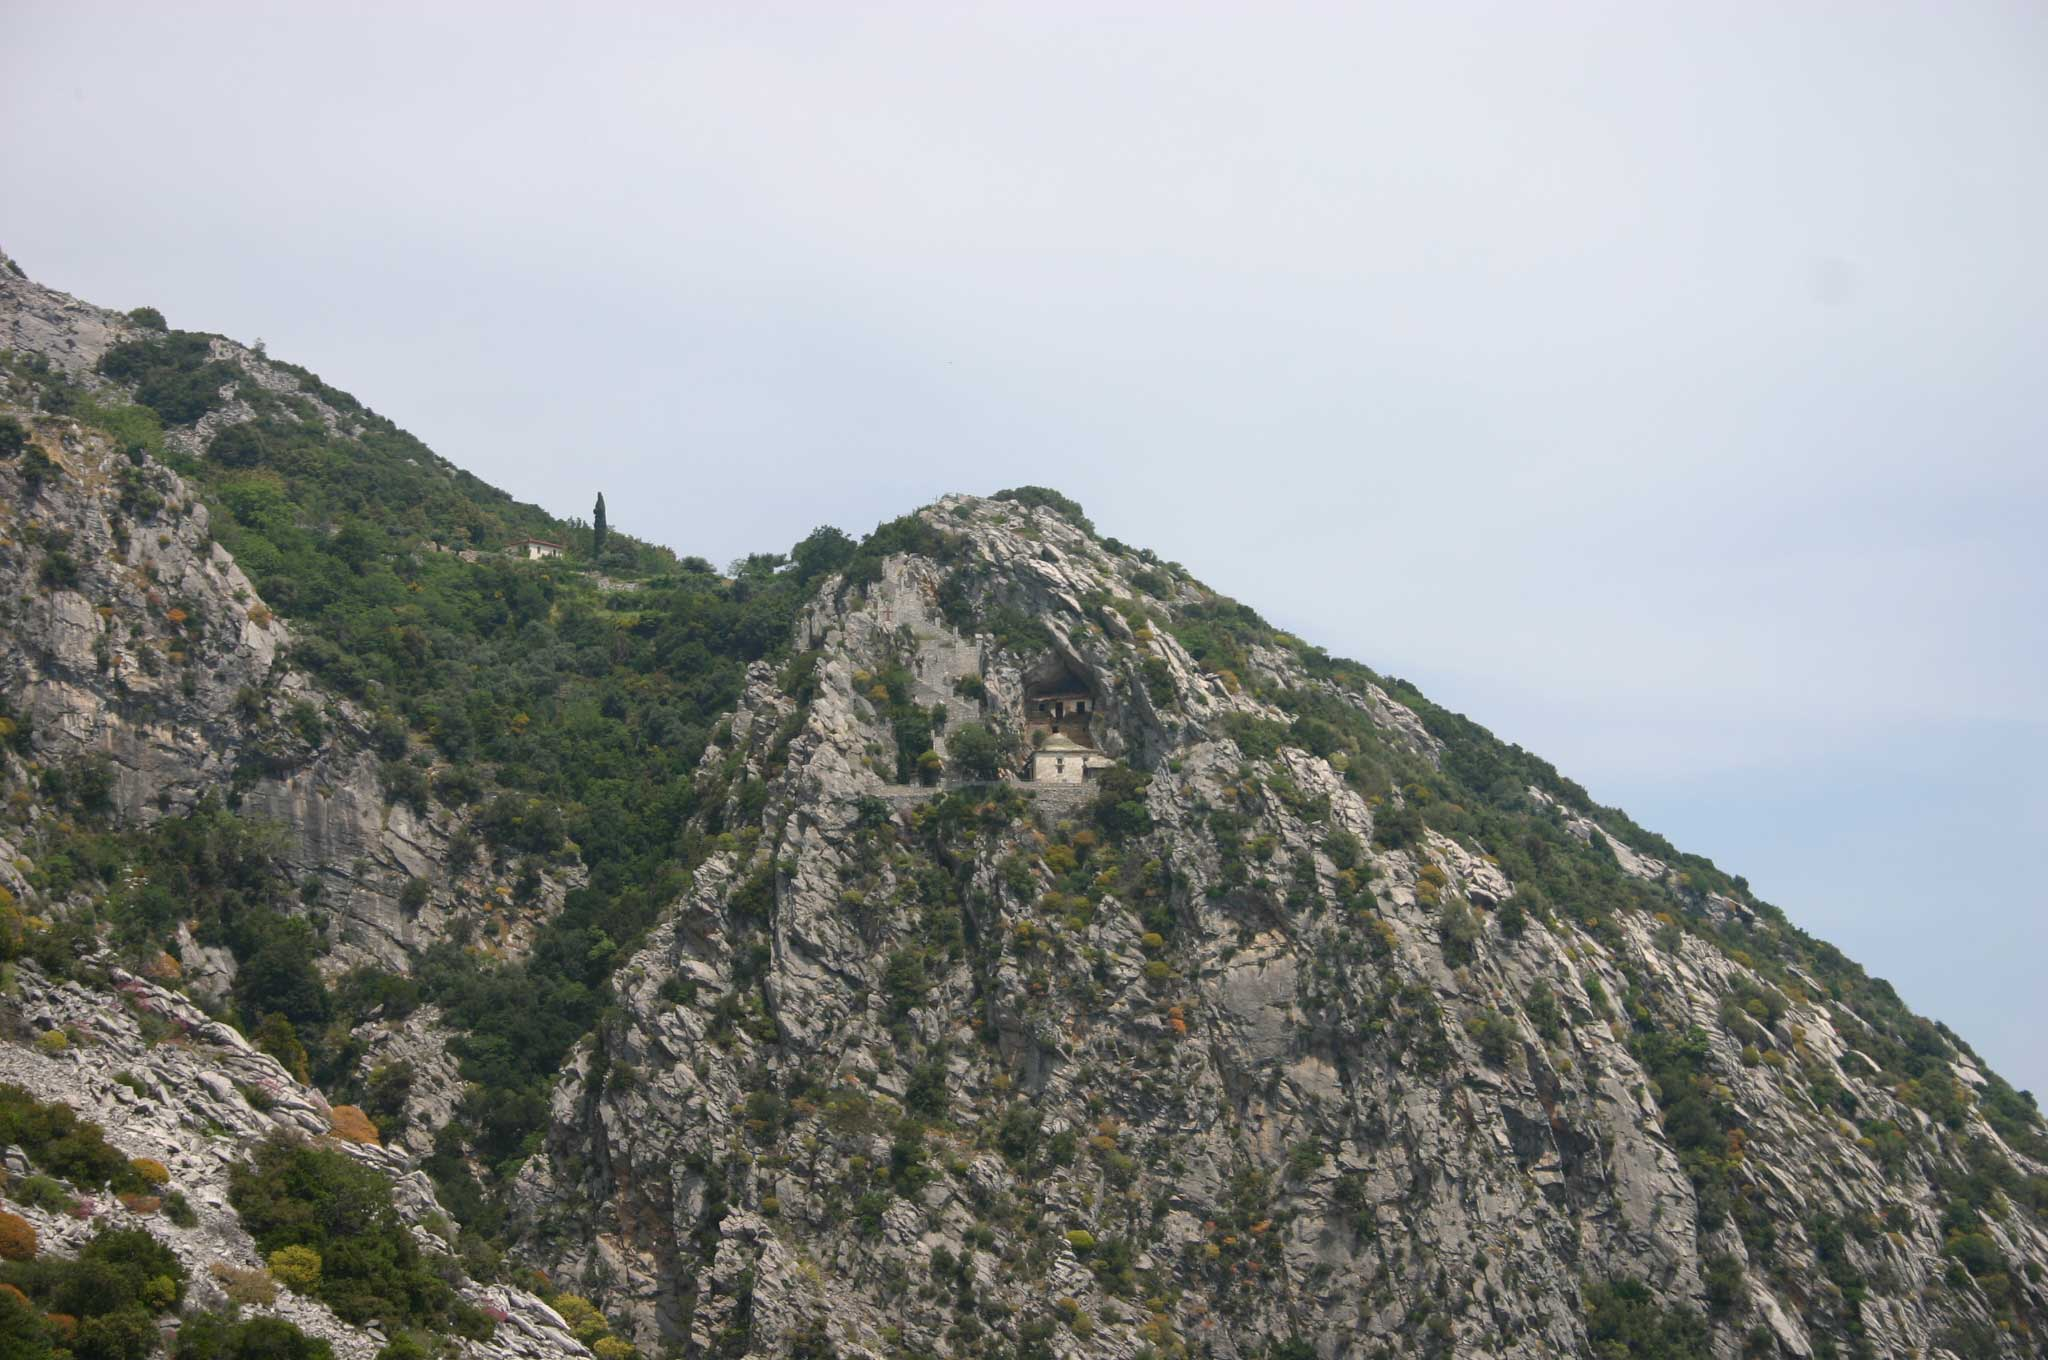 Mount Athos: Mt Athos - Cliff-face Hermitage - © William Mackesy